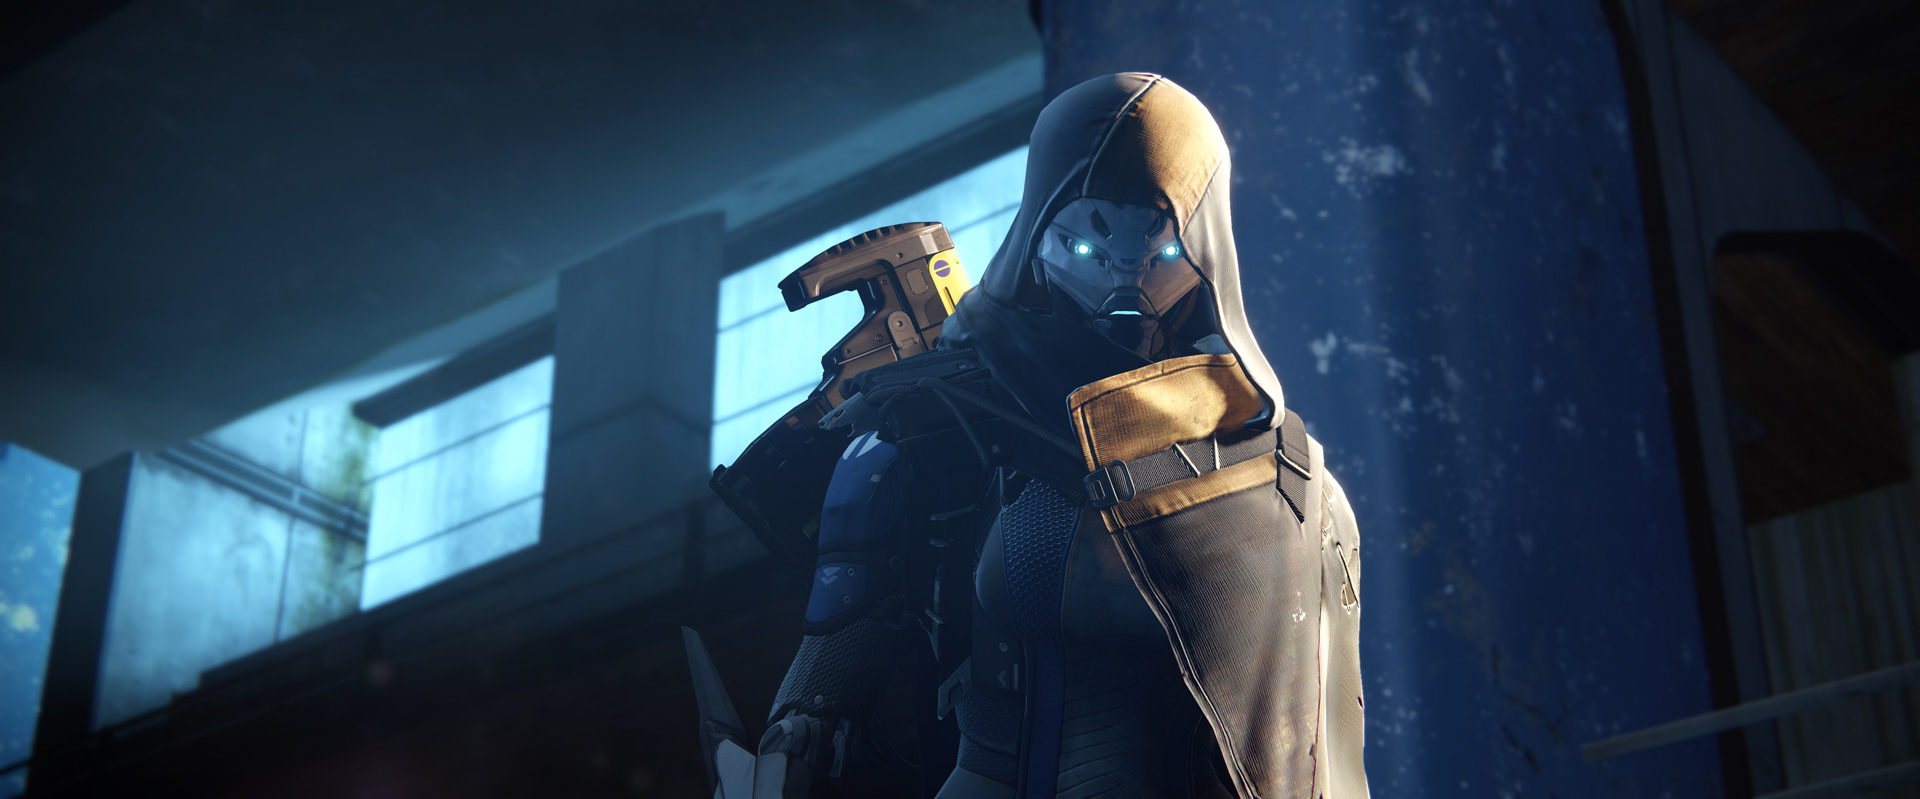 Destiny is a mediocre game with a lot of problems, and I can't stop playing